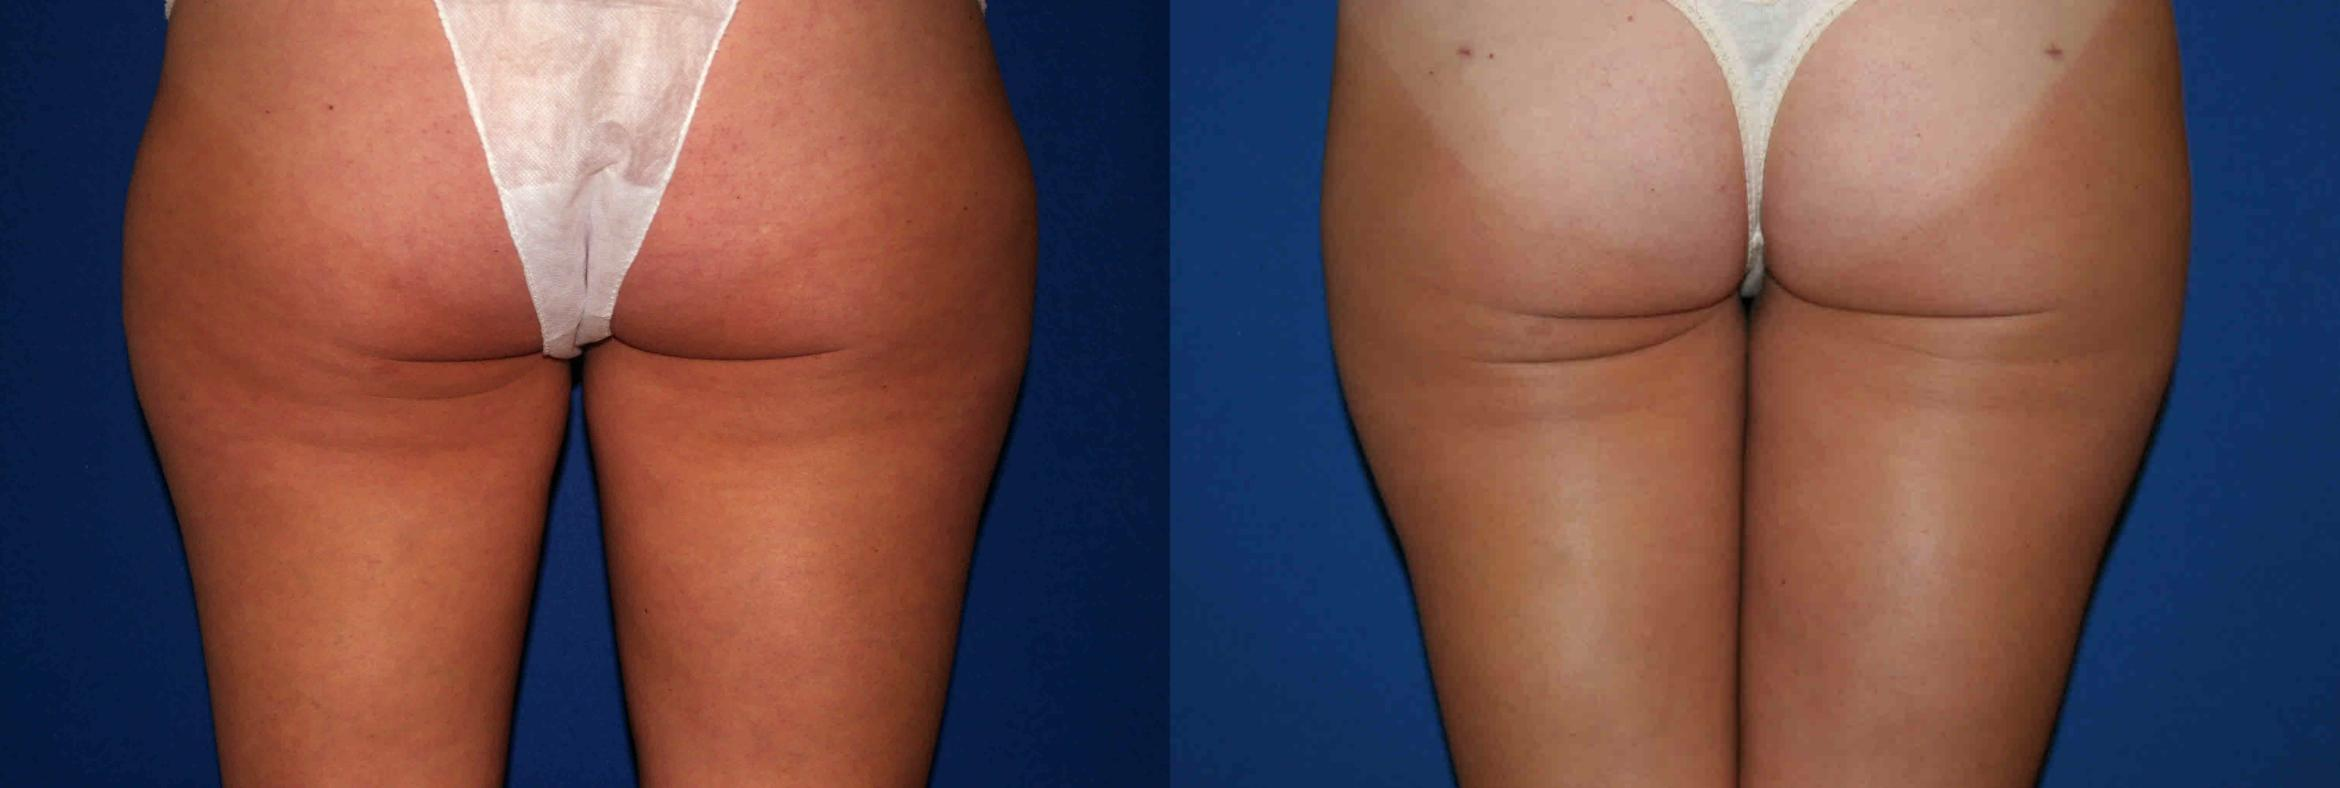 Liposuction Case 29 Before & After View #2 | Palo Alto, CA | Daryl K. Hoffman, MD